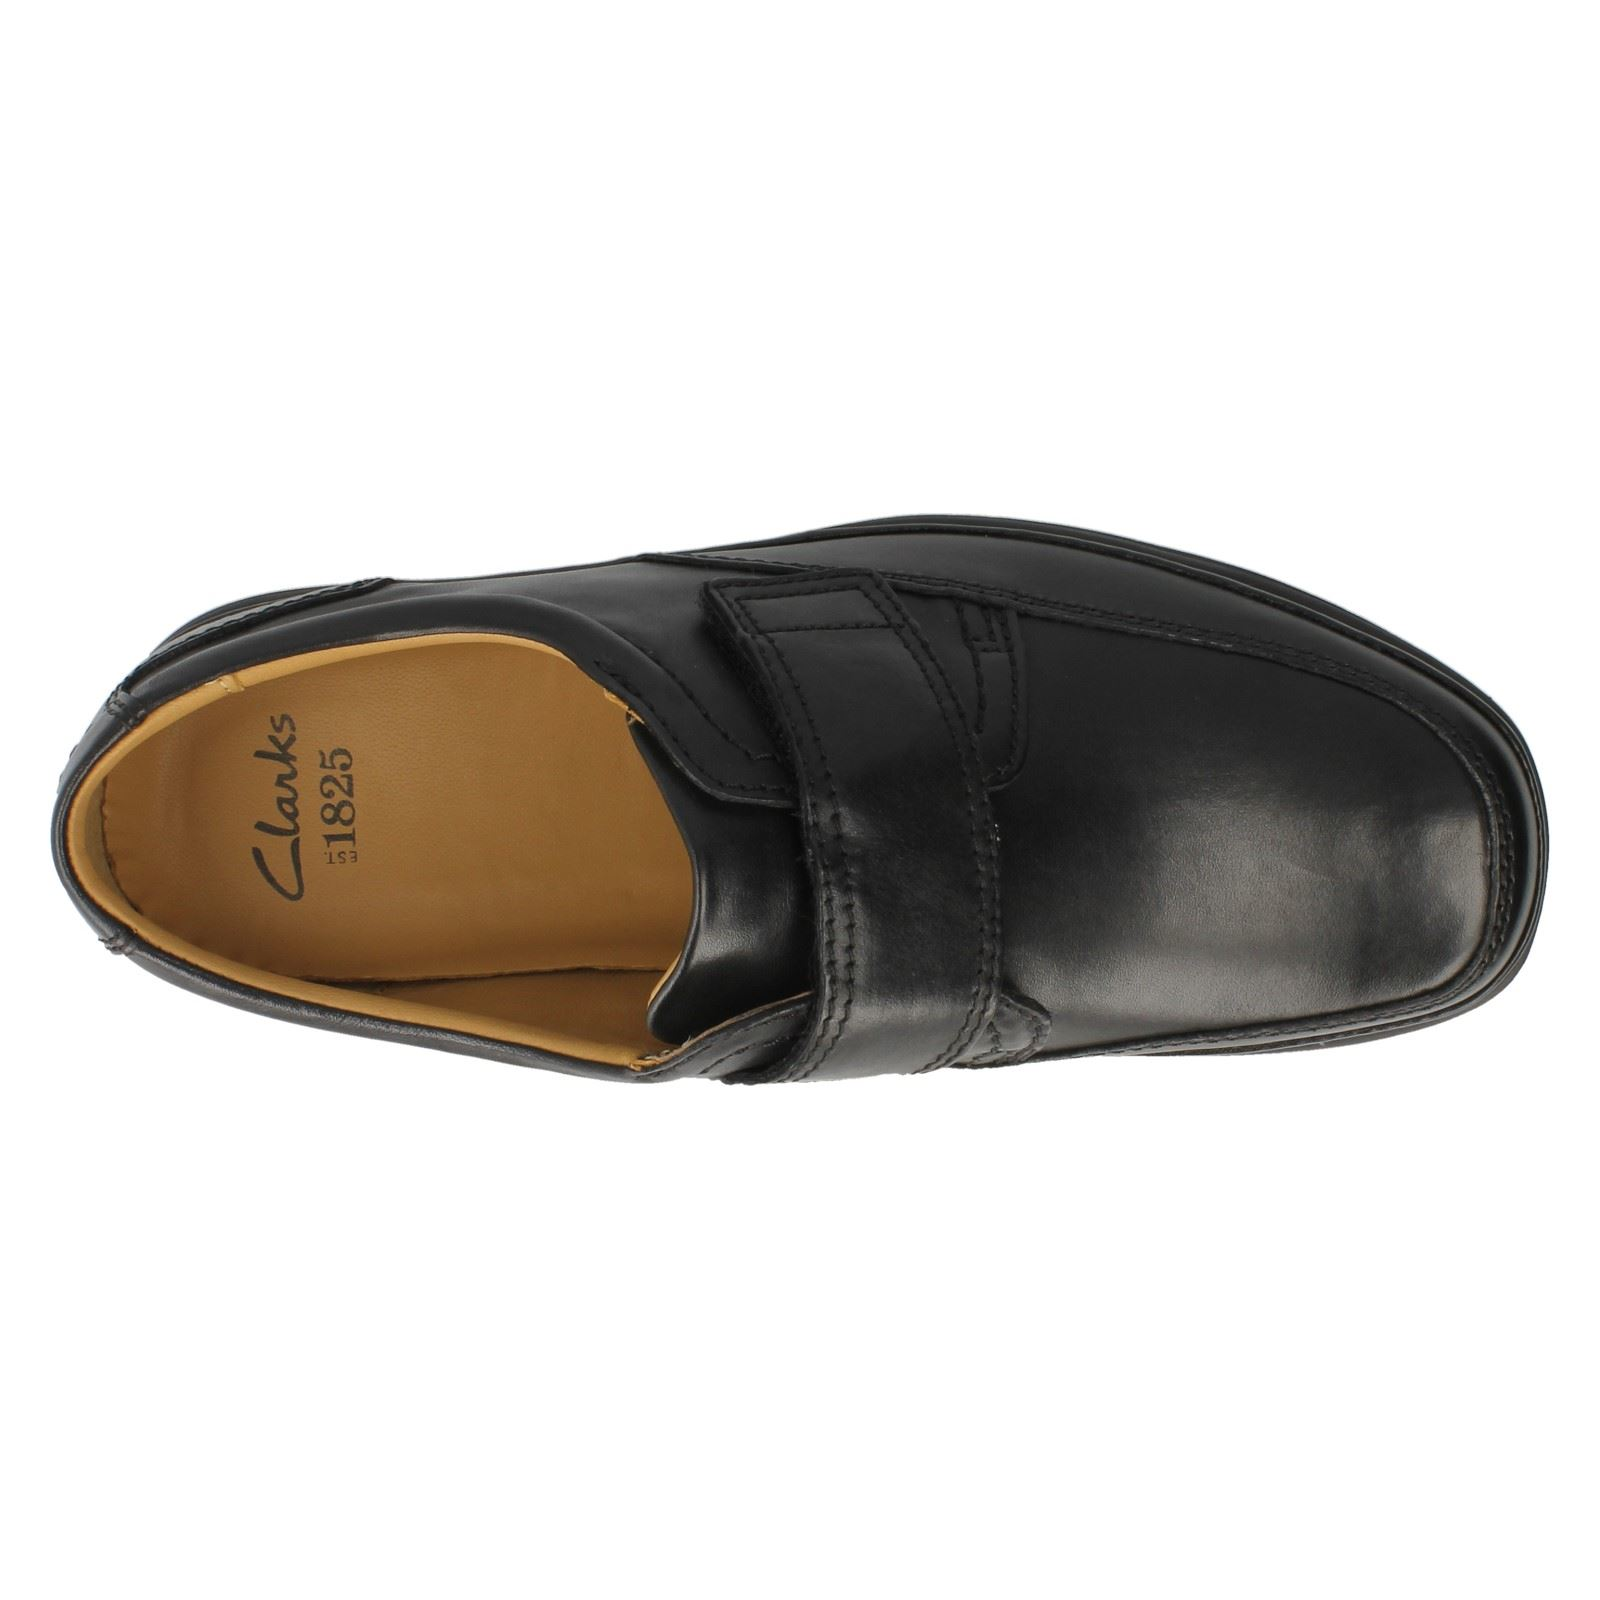 Hombre-Clarks-Zapatos-Turn-Swift